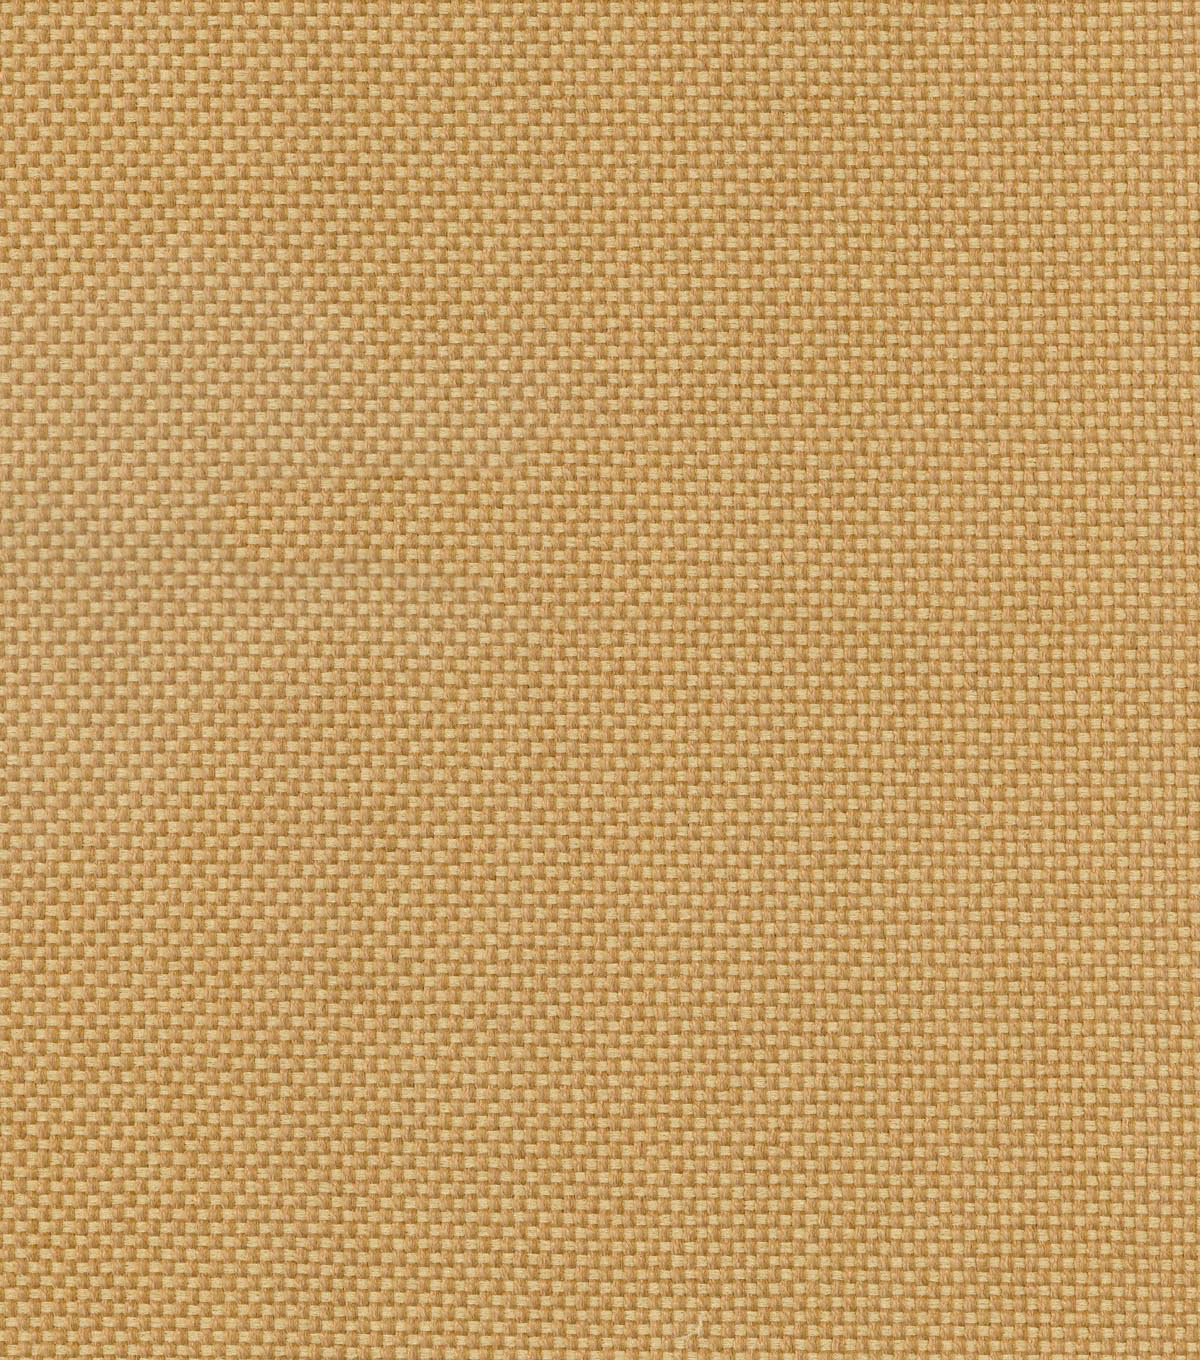 Home Decor 8\u0022x8\u0022 Swatch Fabric-Waverly SoHo Solid Oak